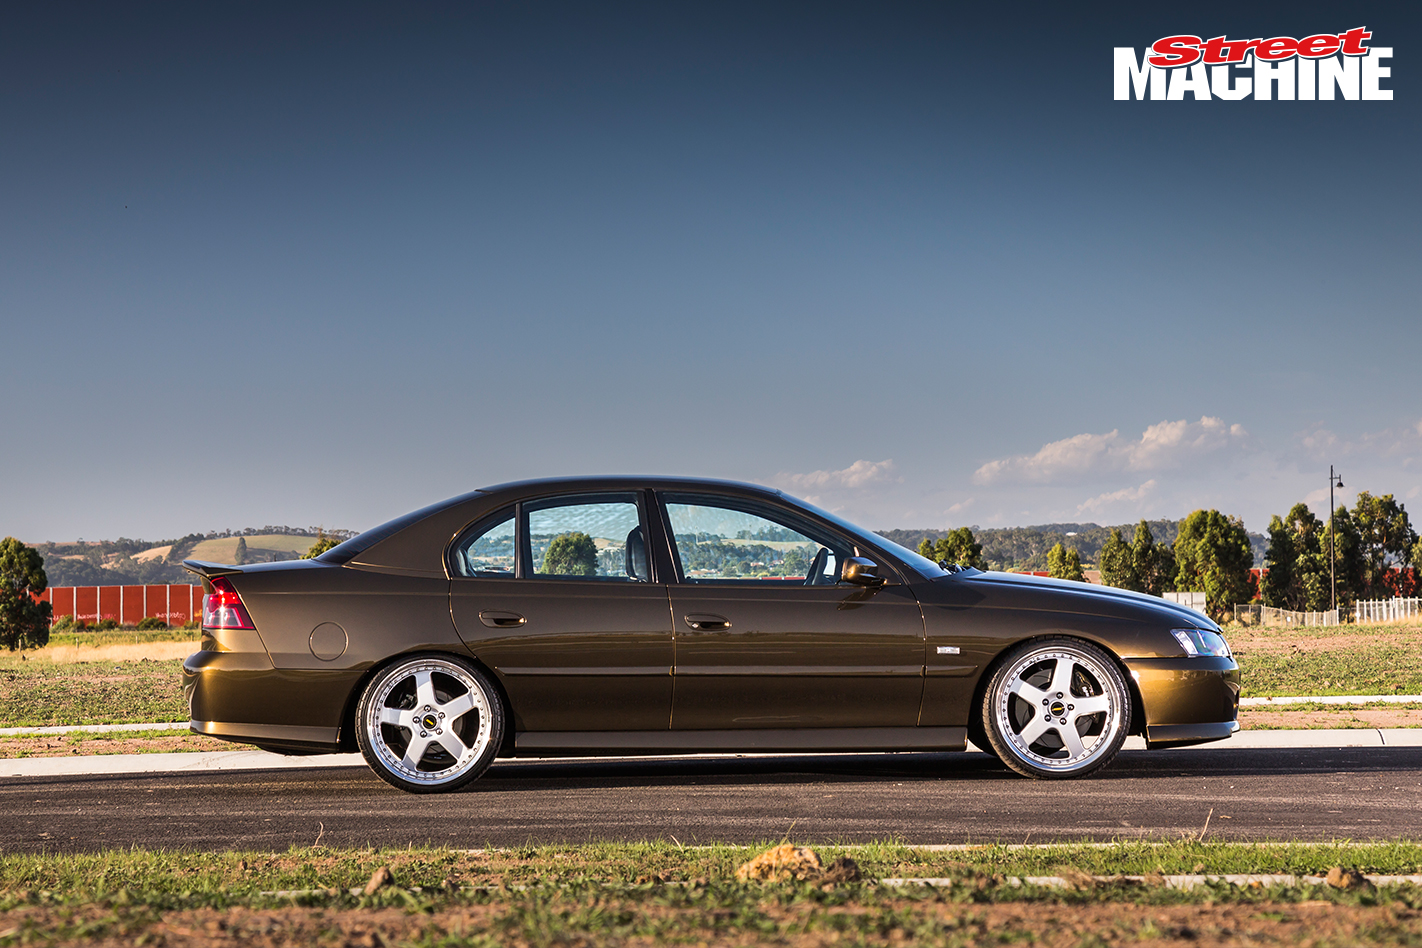 Turbo VY Commodore KINGGM 13 Nw